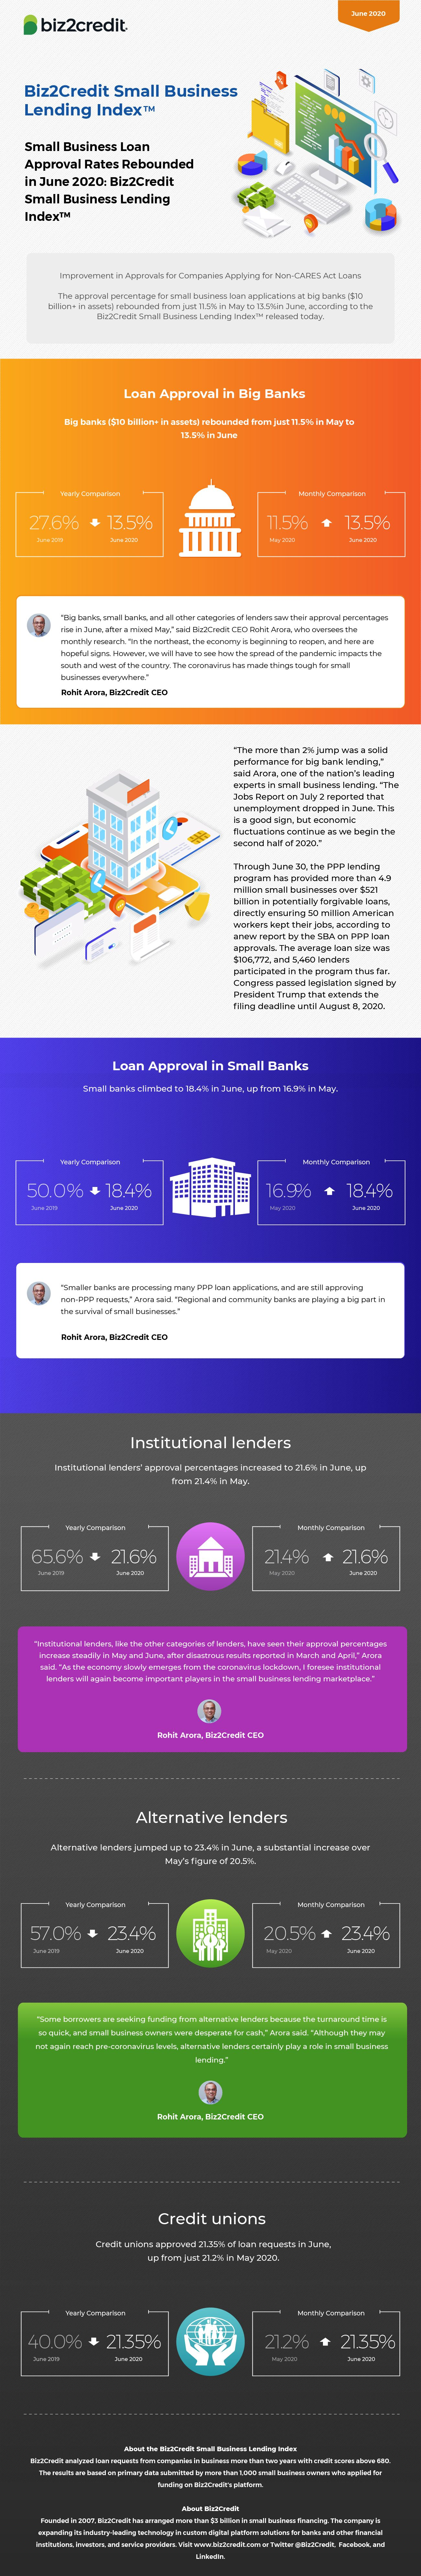 Infographic Small Business Lending Index June 2020 In 2020 Small Business Lending Small Business Loans Business Loans